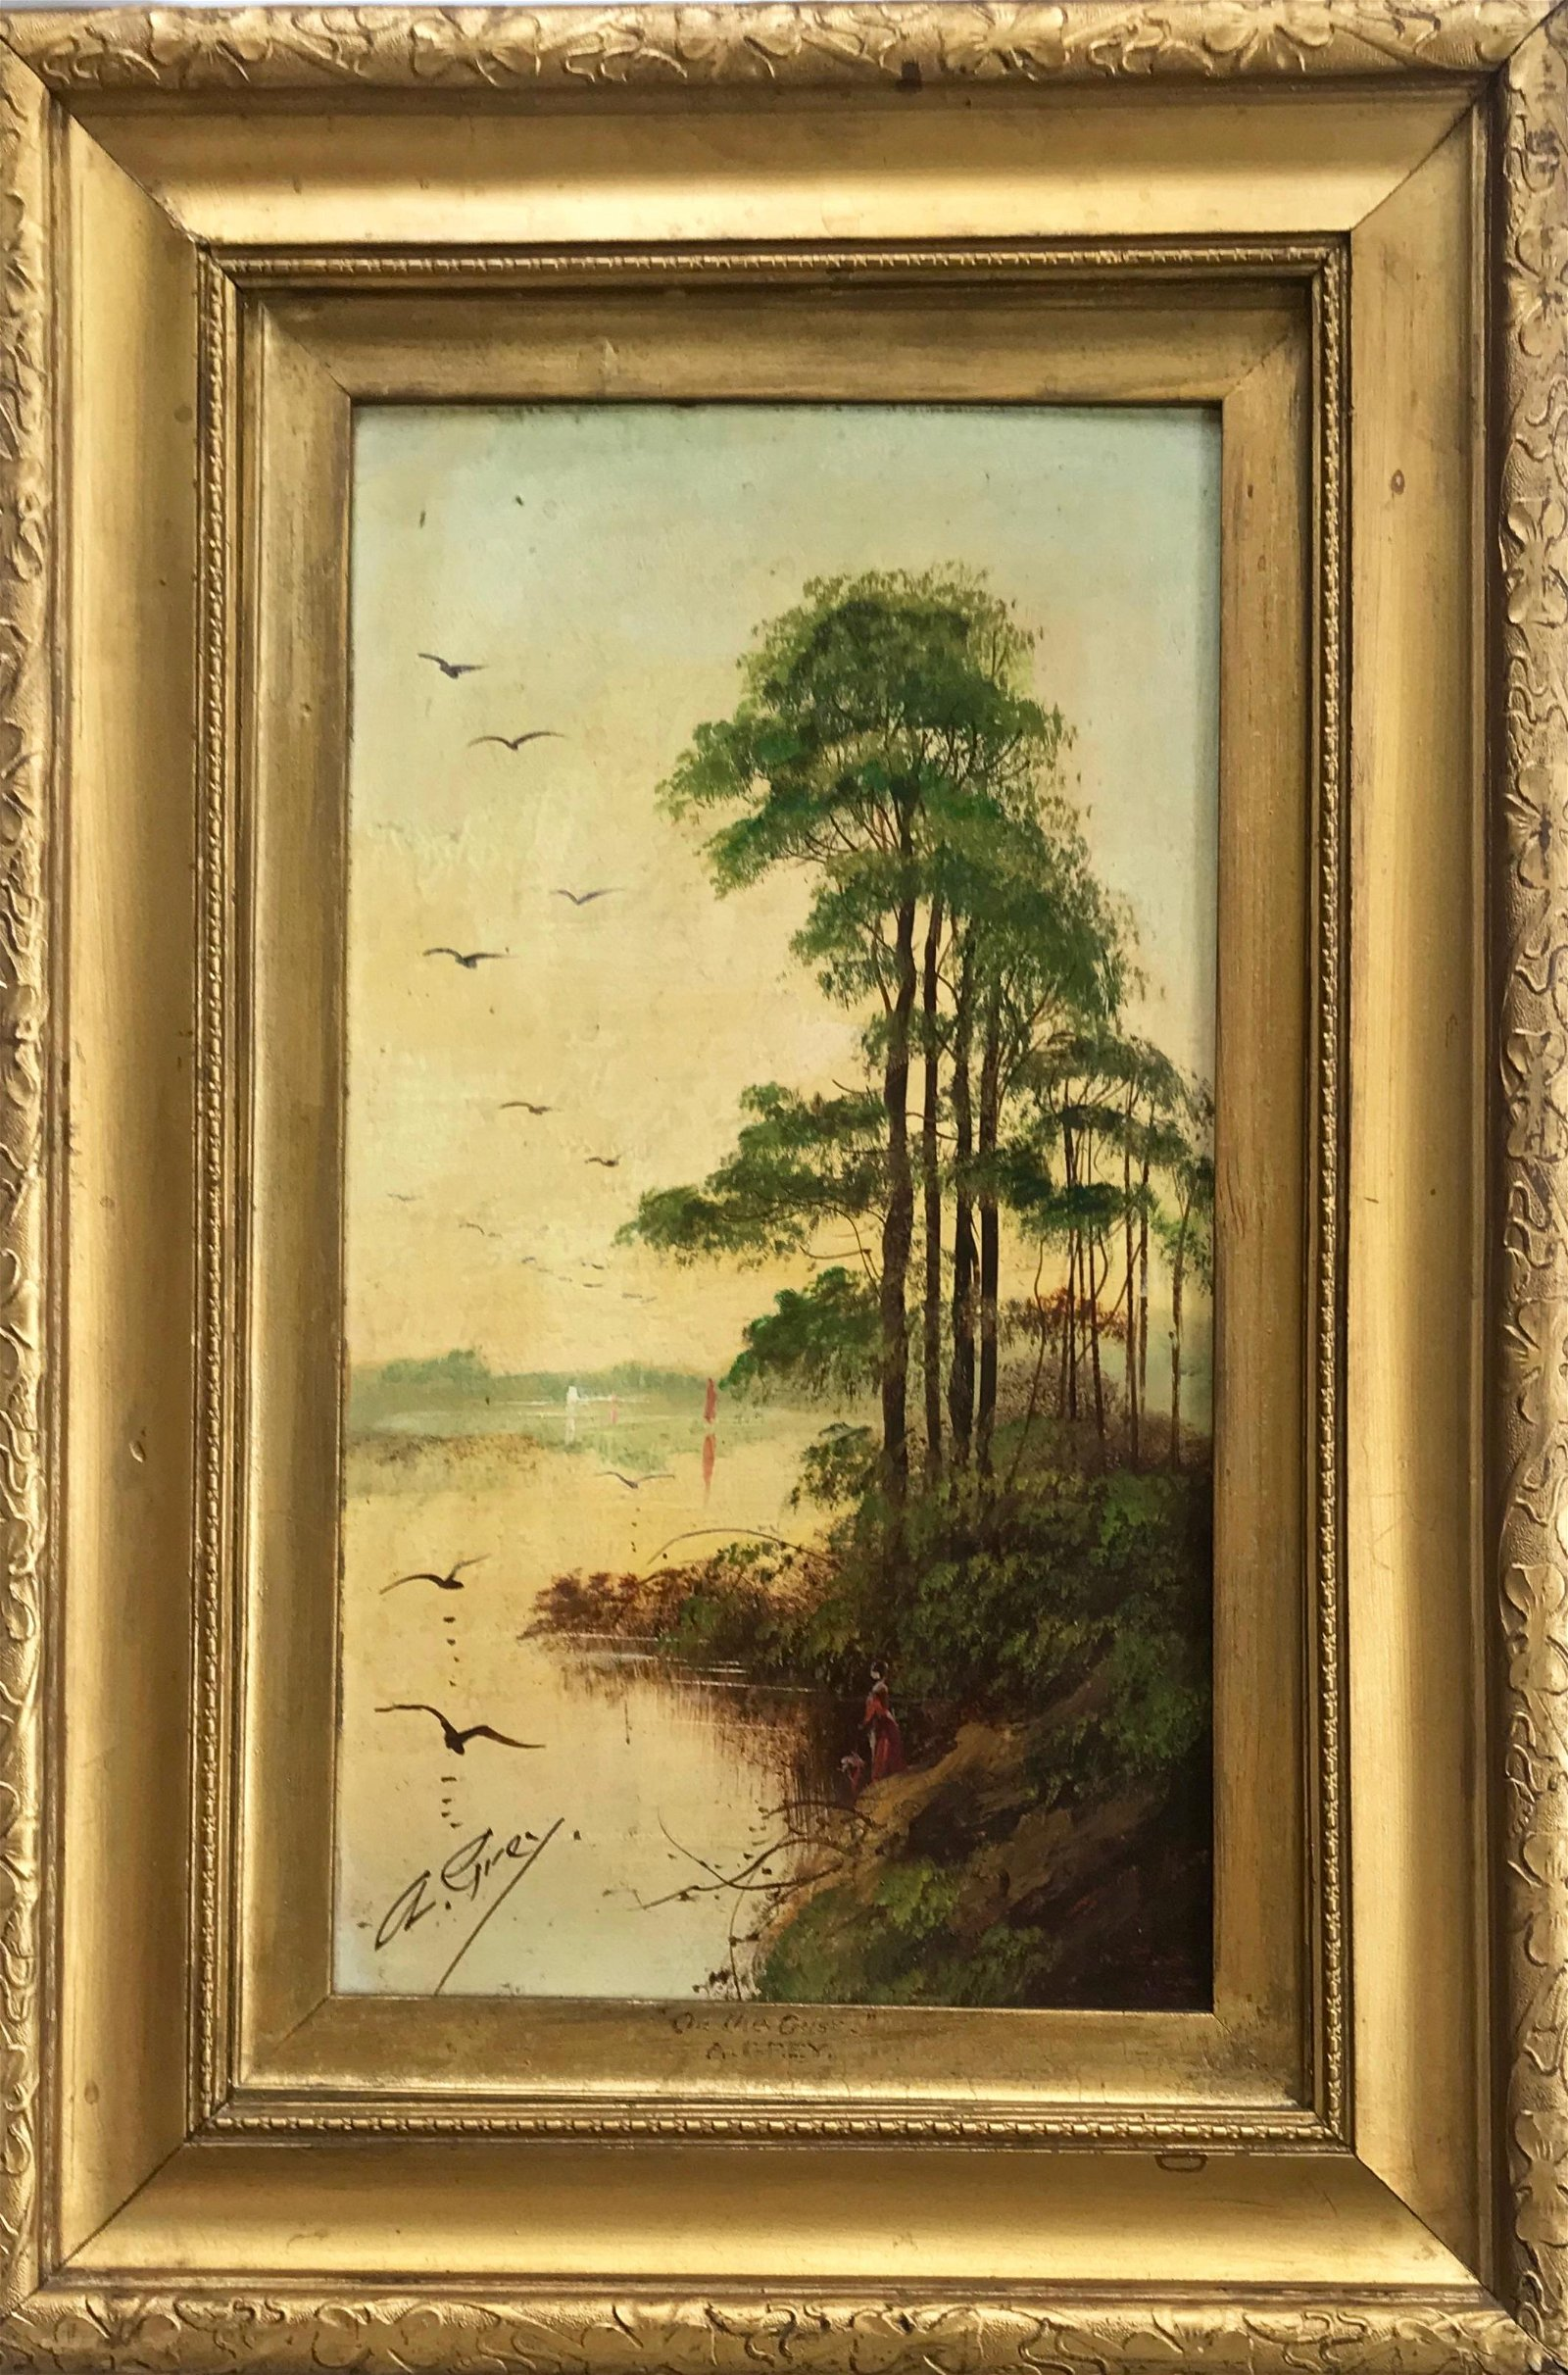 19th Century River Landscape Oil Painting, A Grey